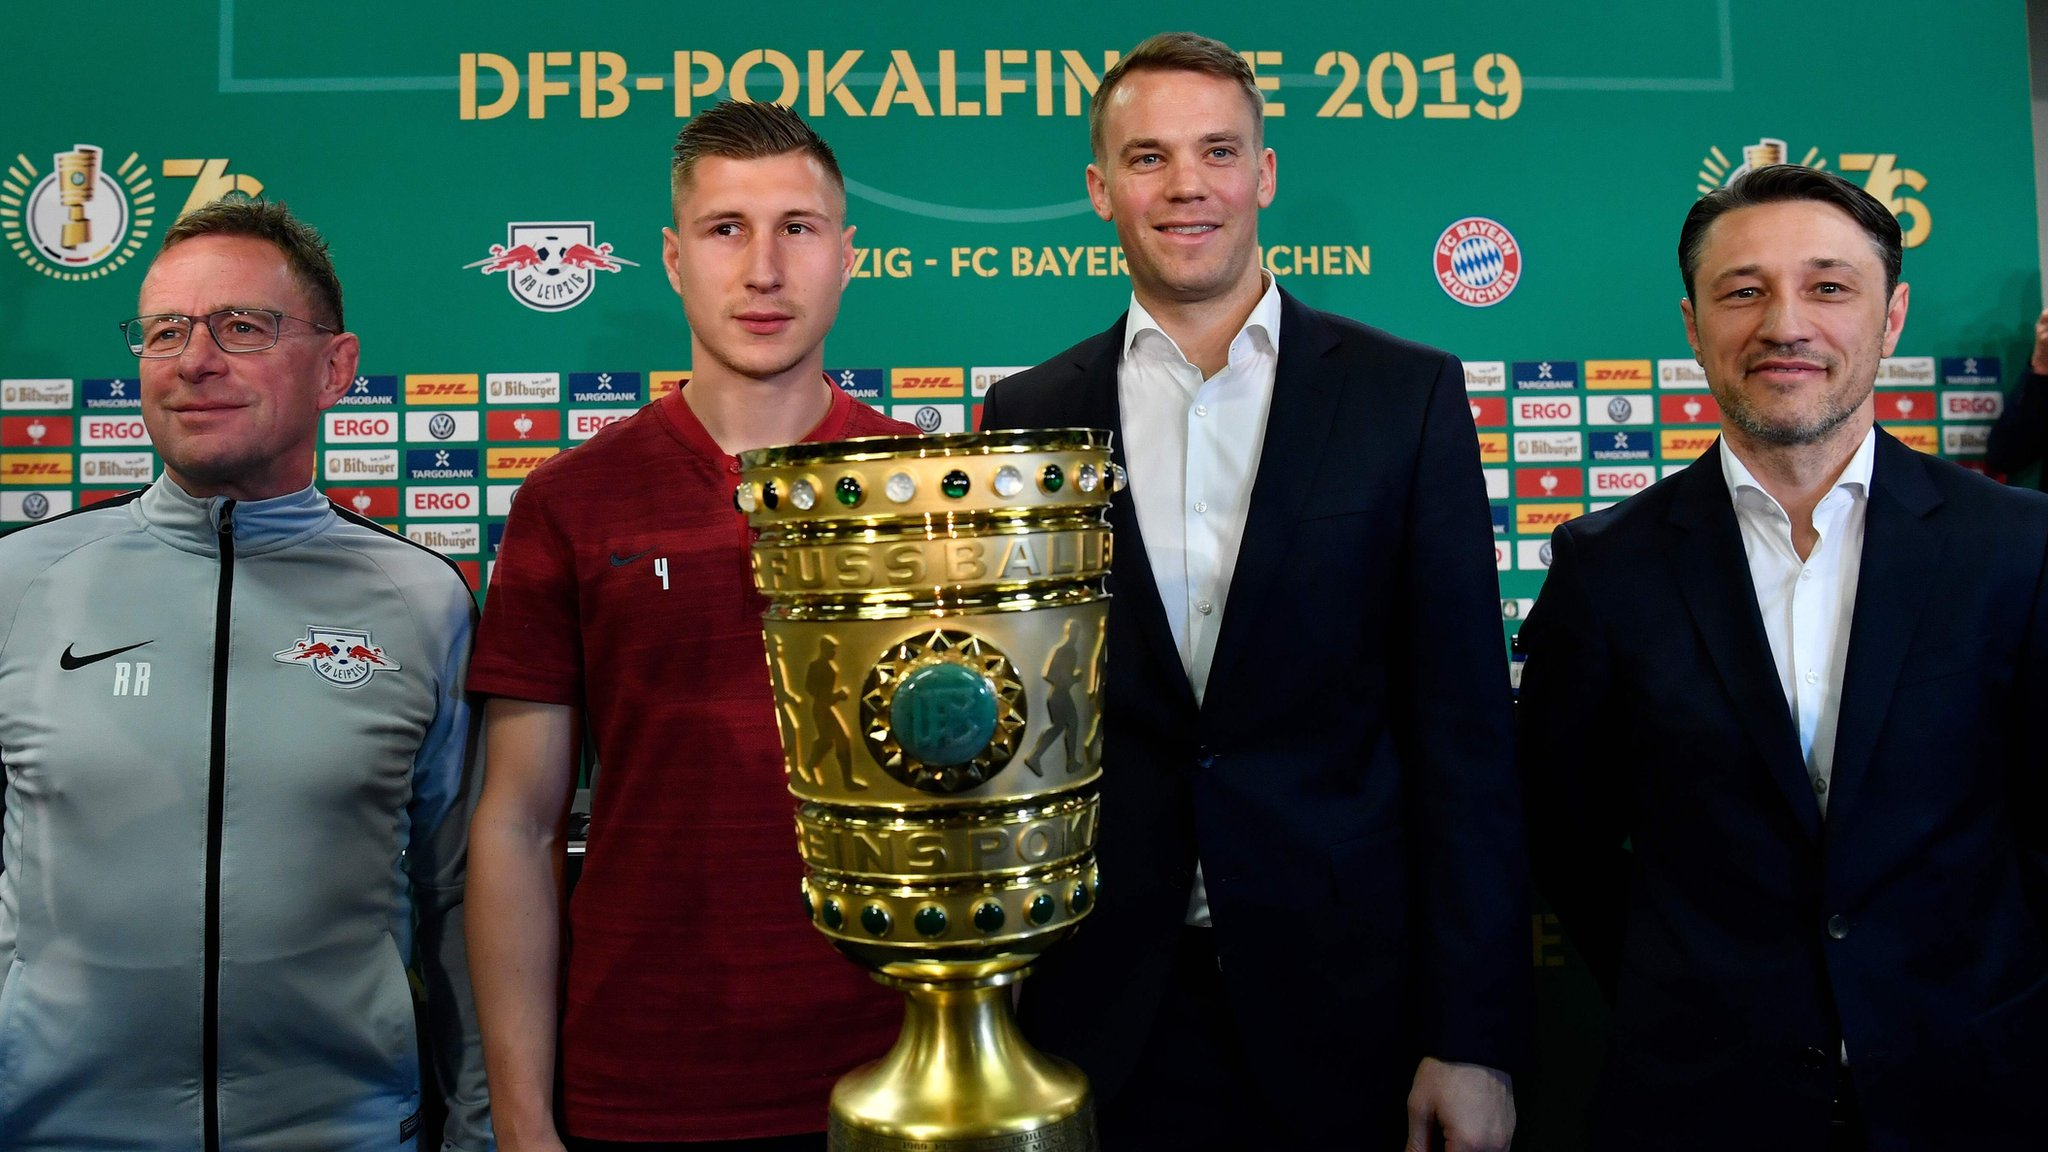 DFB Pokal final: Bayern Munich's Niko Kovac says RB Leipzig are 'worst possible opponents'